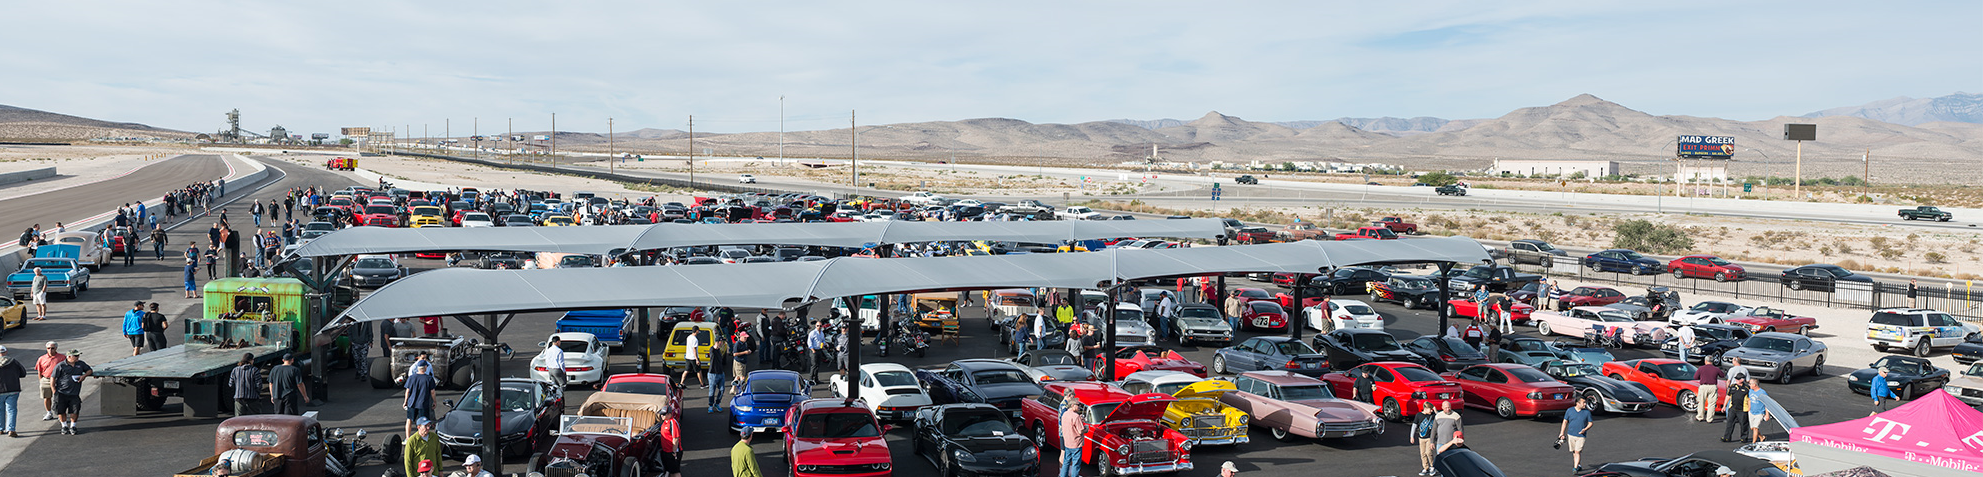 Hundreds of automotive enthusiasts from all over the Las Vegas valley and tourists from around the world gathered this weekend to celebrate the debut of Cars and Coffee at SPEEDVEGAS. Every Saturday morning between 7:00 a.m. – 10:00 a.m. proud collector car owners and fans converge to showcase their exotic, vintage, and muscle cars along with motorcycles, concepts and hotrods. Several hundred cars are typically on display every weekend with examples from some of the biggest names in automotive to include Ferrari, Audi, Porsche, Chevrolet and Dodge.